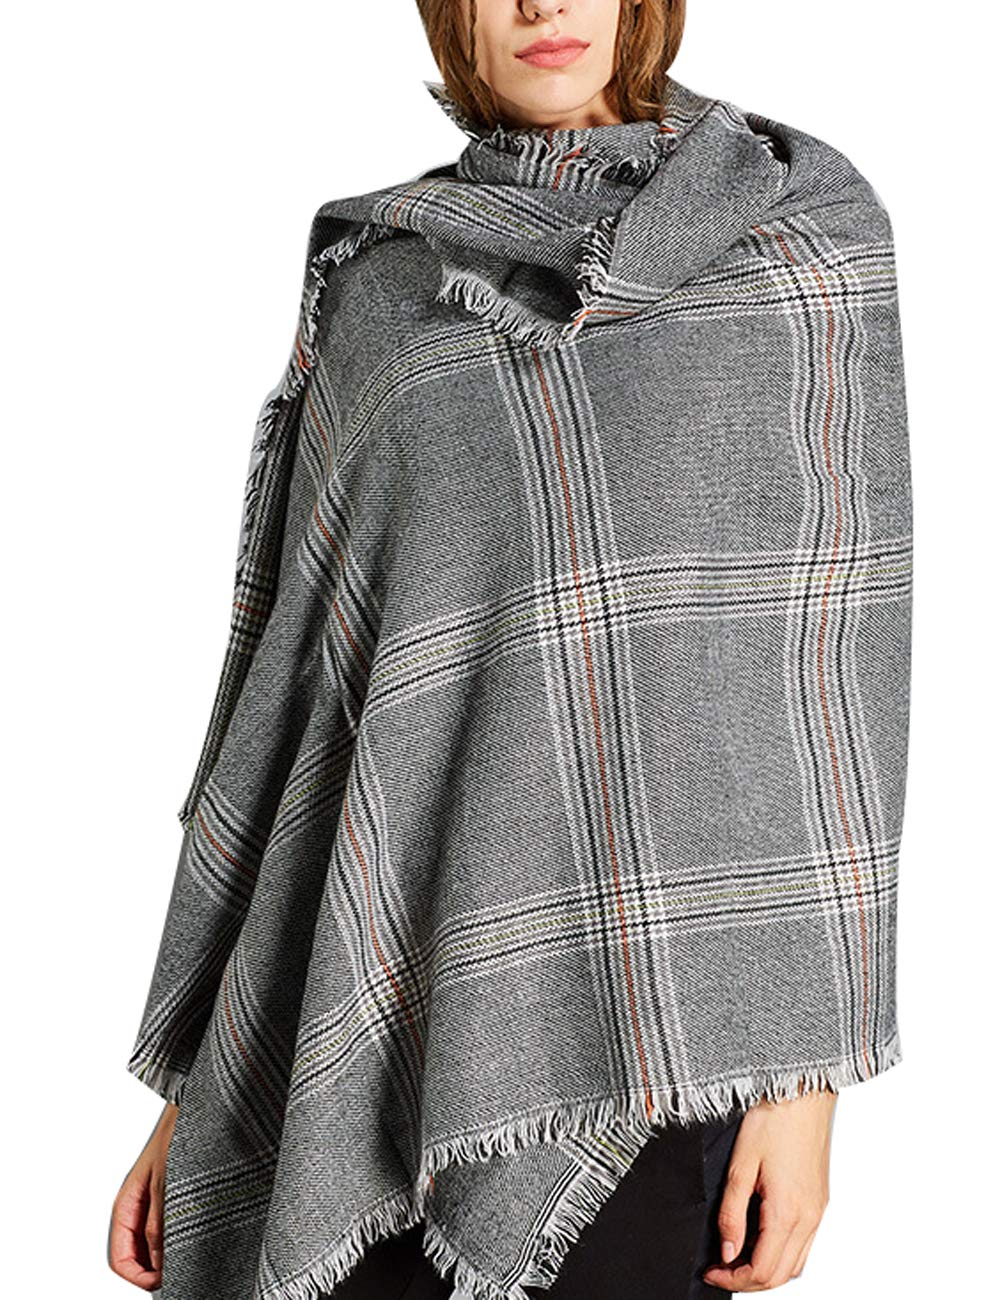 Zoulee 2018 New Women or Men Soft Plaid Cashmere Wraps Shawls Stole Scarf British Style Scarves 78''x 28'' Light Grey